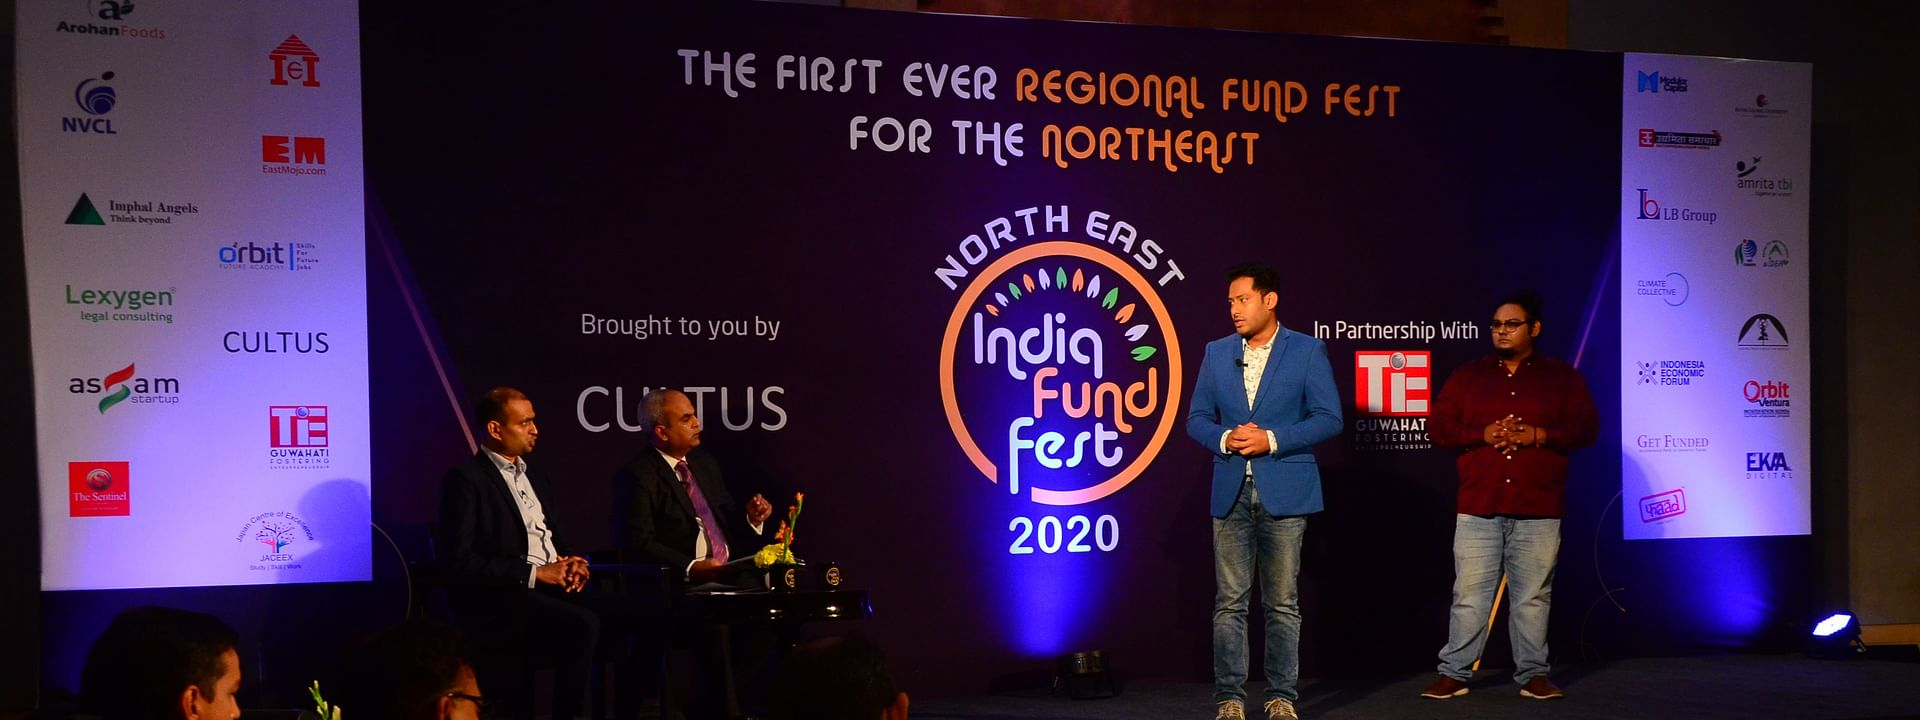 North East India Fund Fest: Startups get deals worth over Rs 5 cr